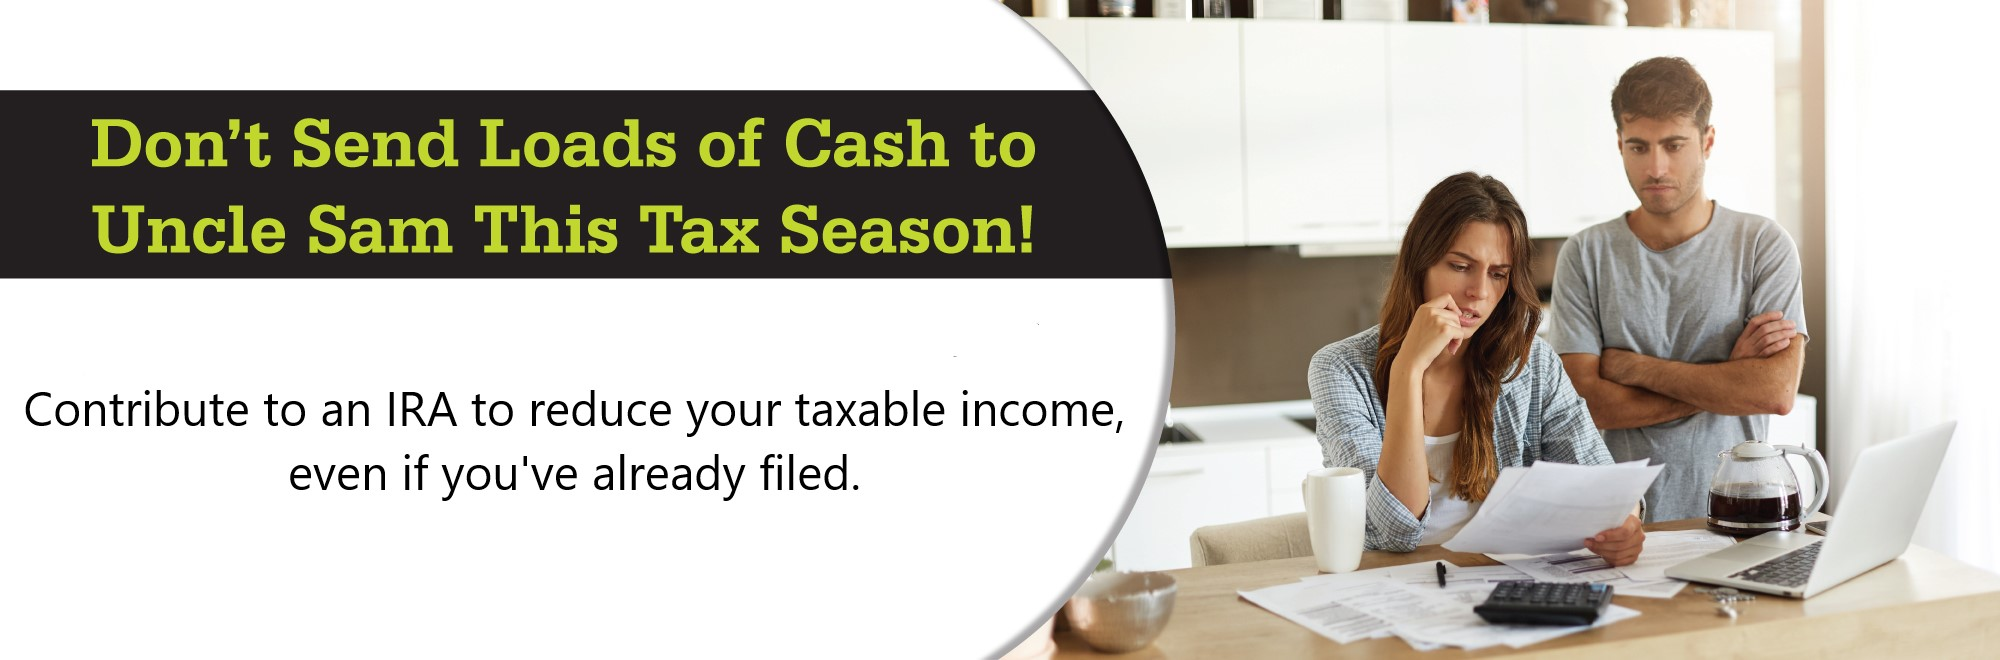 Don't send loads of cash to Uncle Same this tax season! Contribute to an IRA to reduce your taxable income, even if you've already filed.